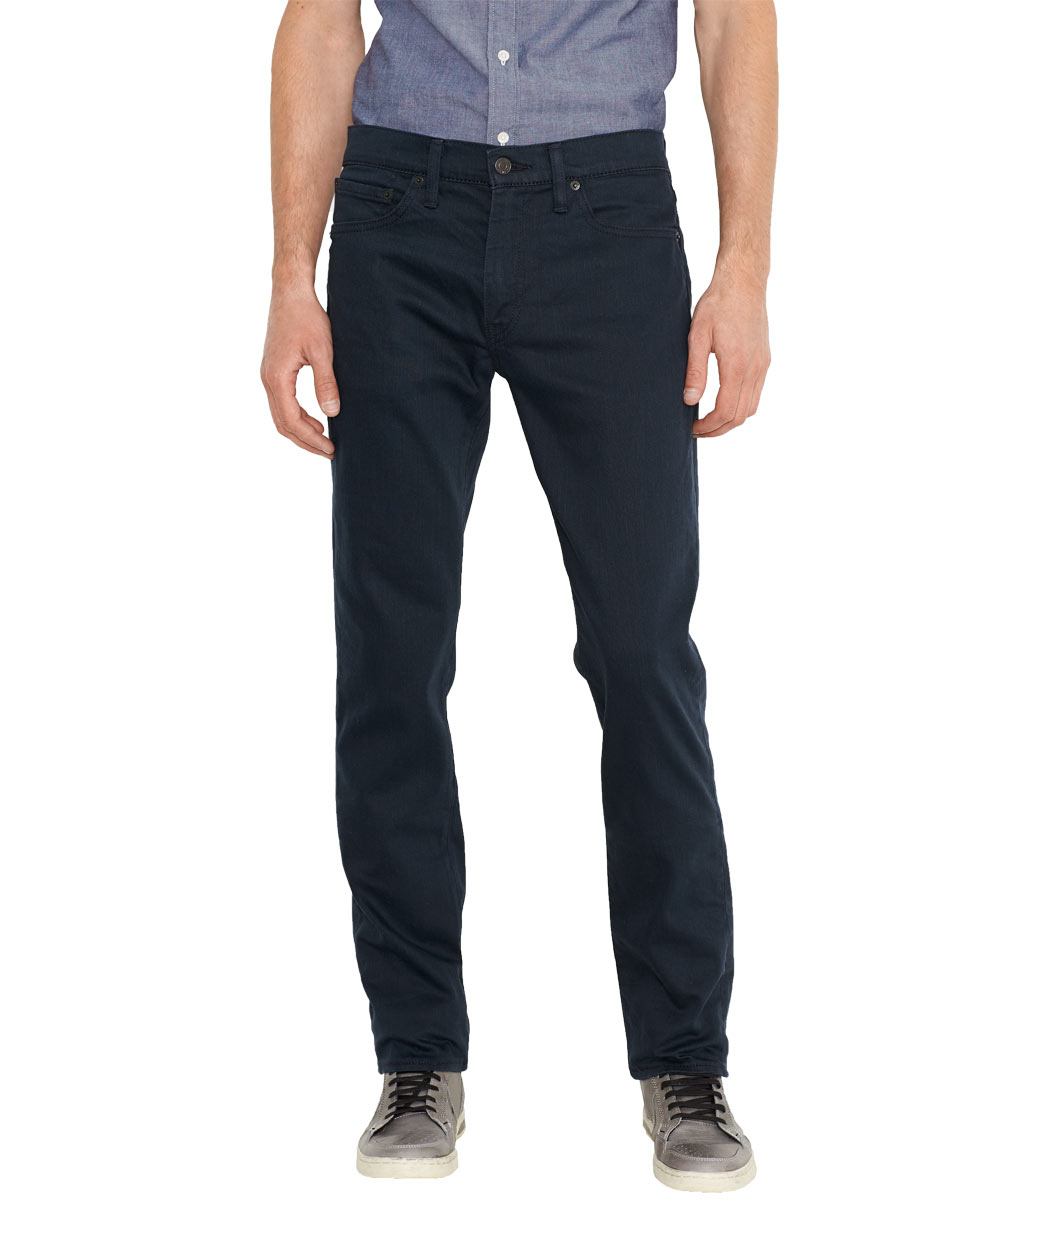 Levis 511 Jeans - Slim Fit - Deep Sulphur